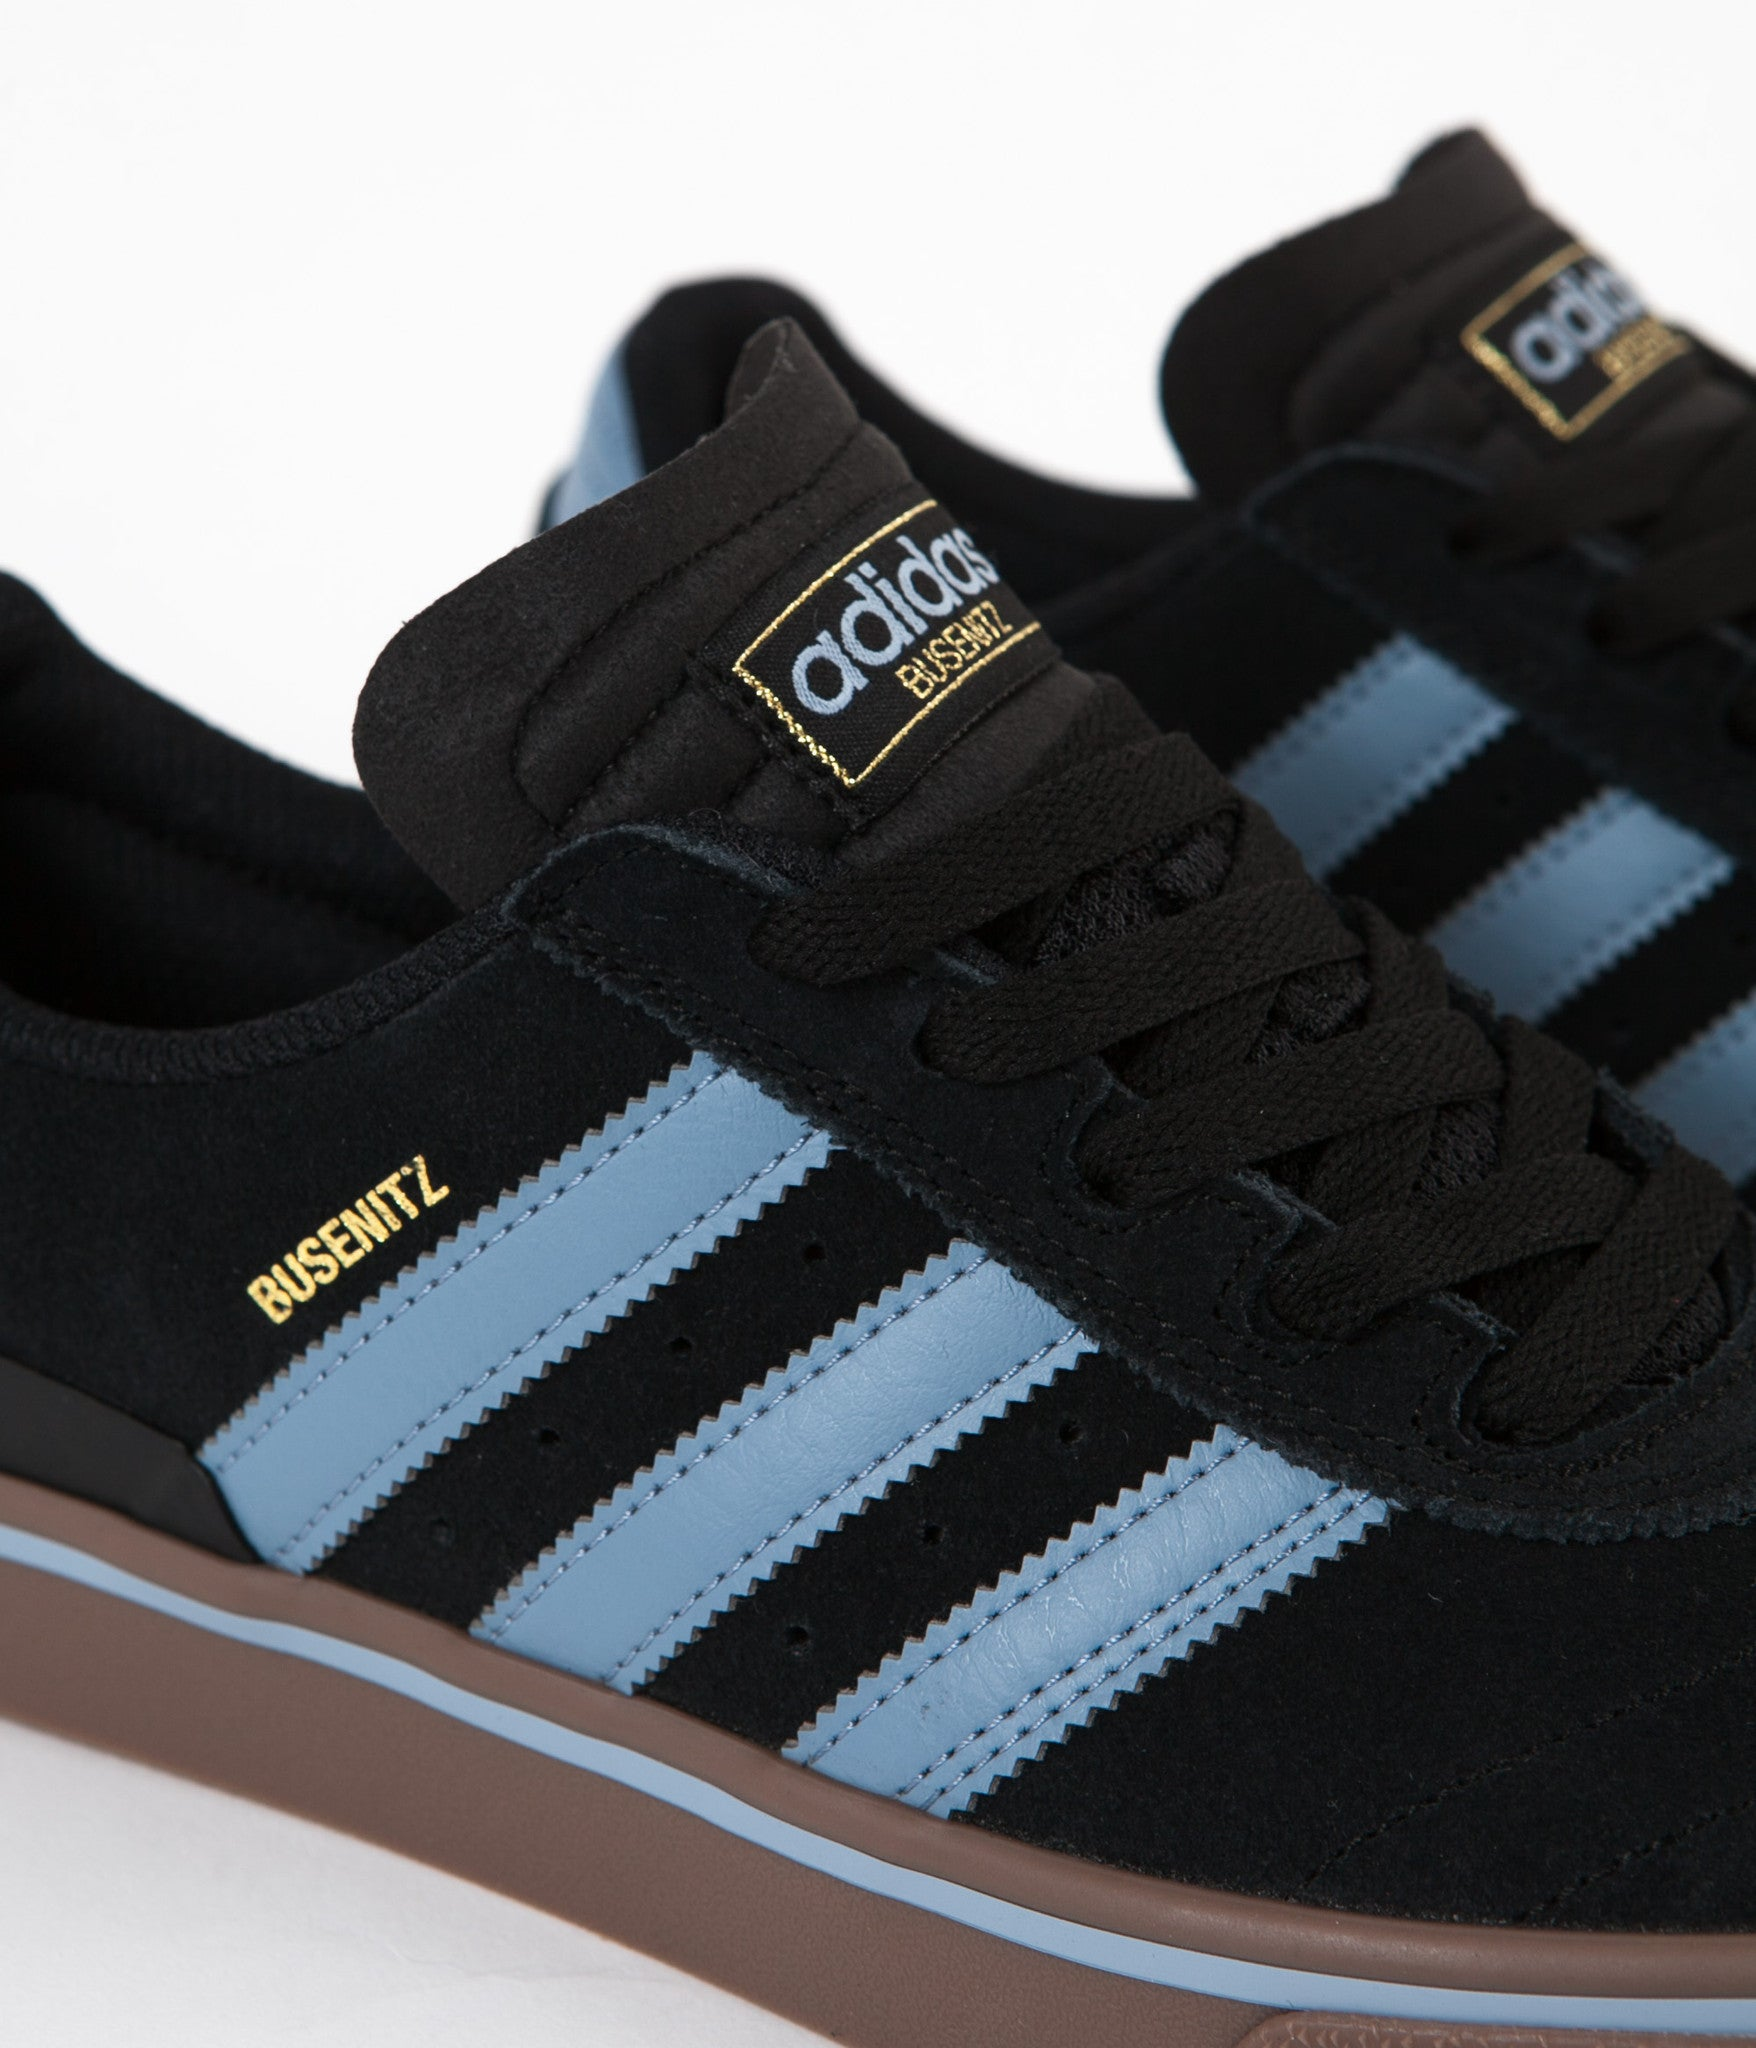 hot sale online 5941c 3a88b ... Adidas Busenitz Vulc ADV Shoes - Core Black  Tactile Blue  Gum5 ...